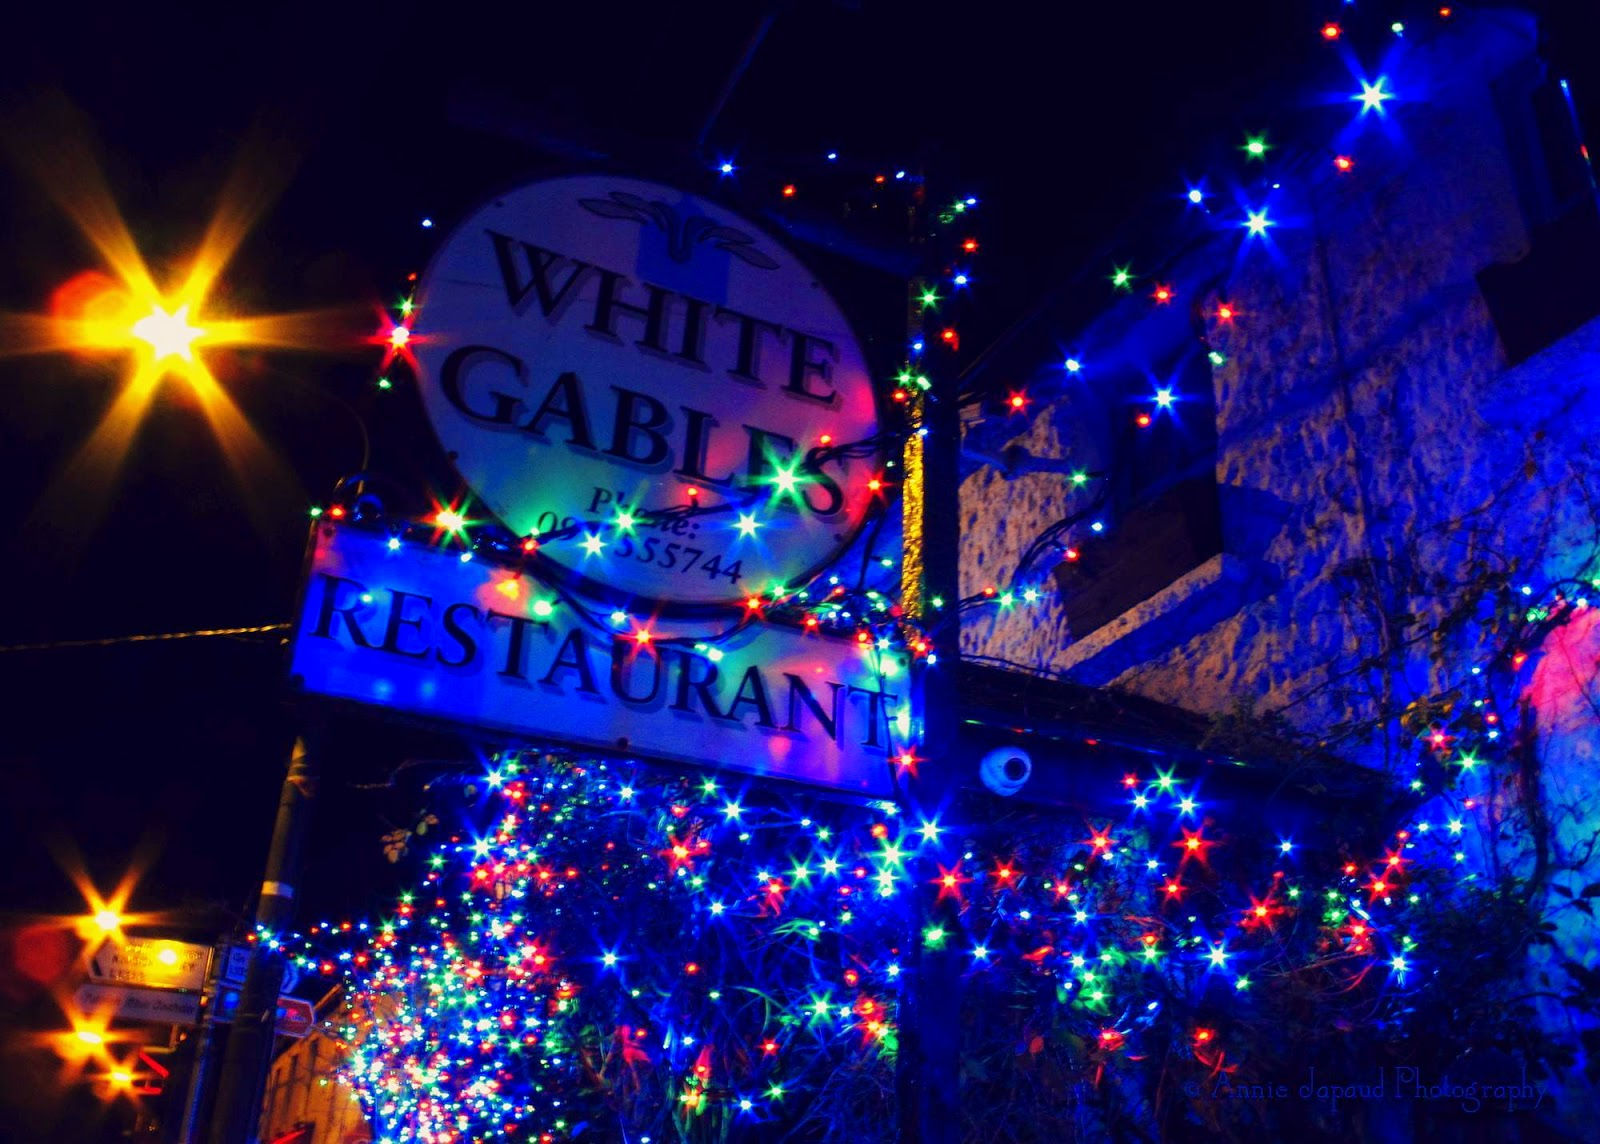 White gables sign with Christmas lights